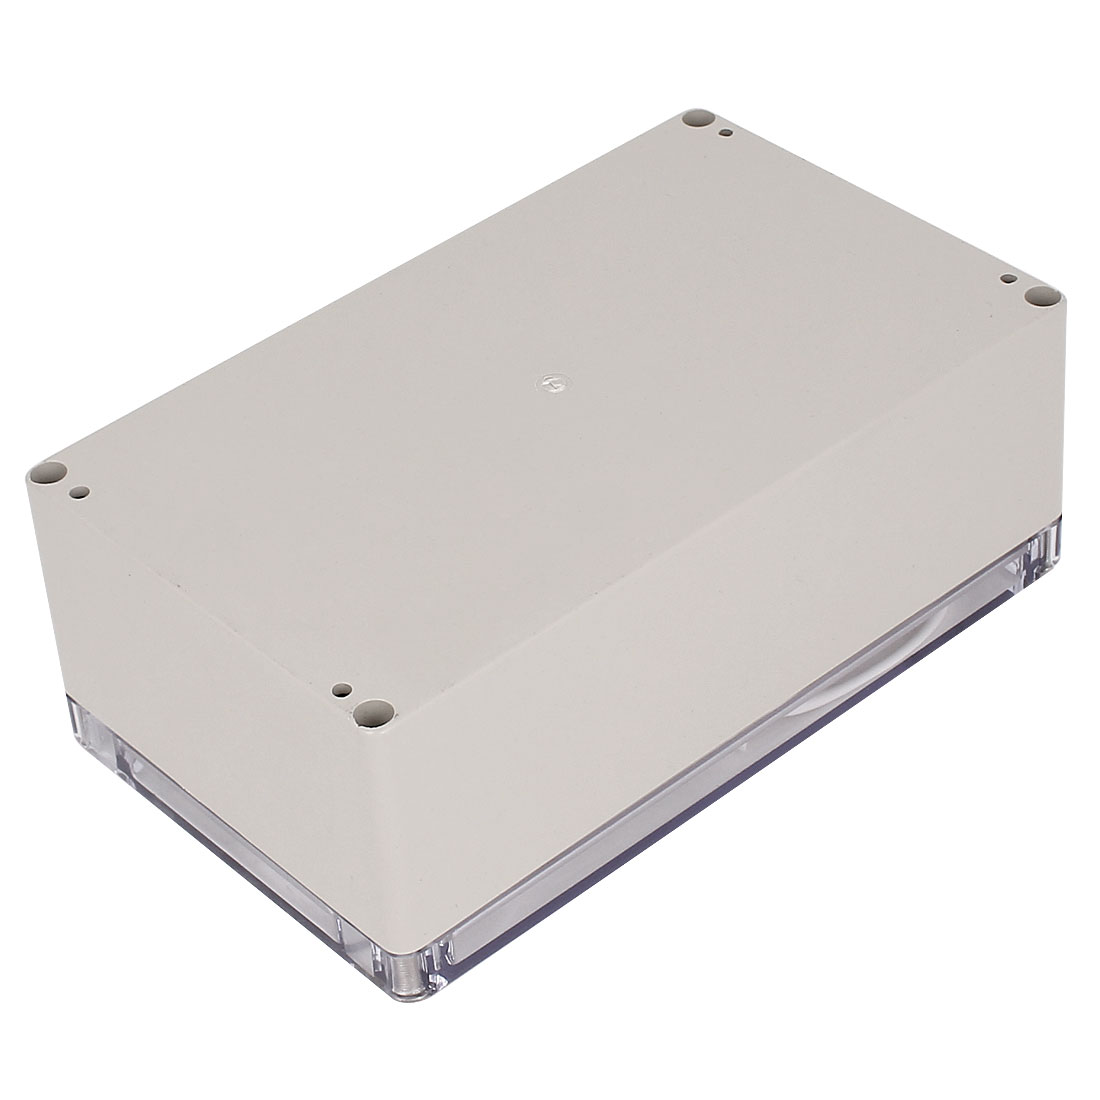 200mm x 120mm x 77mm Dustproof IP65 Sealed DIY Joint Electrical Junction Box